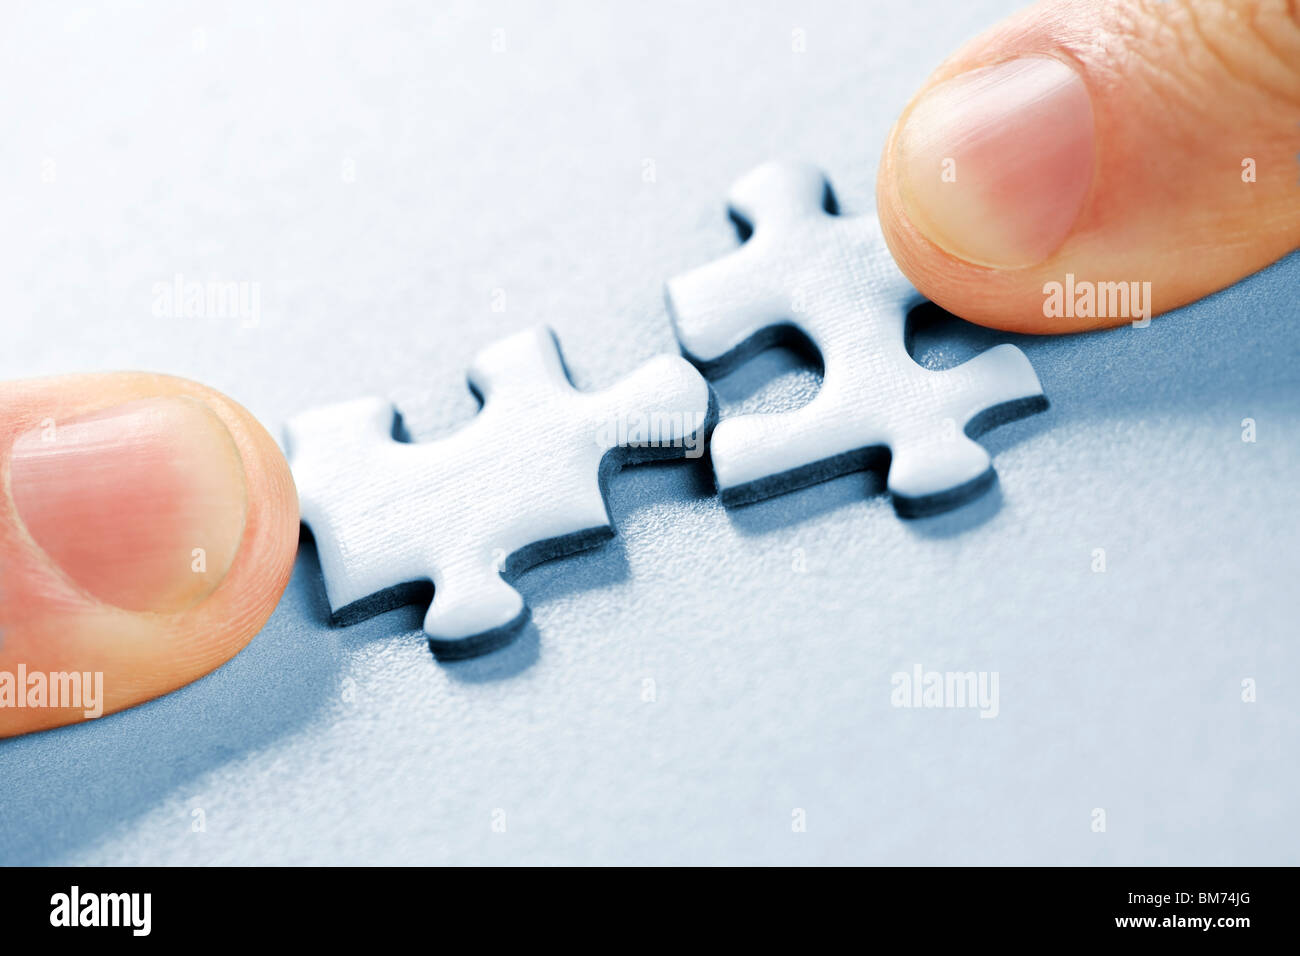 Fingers pushing two matching puzzle pieces together - Stock Image